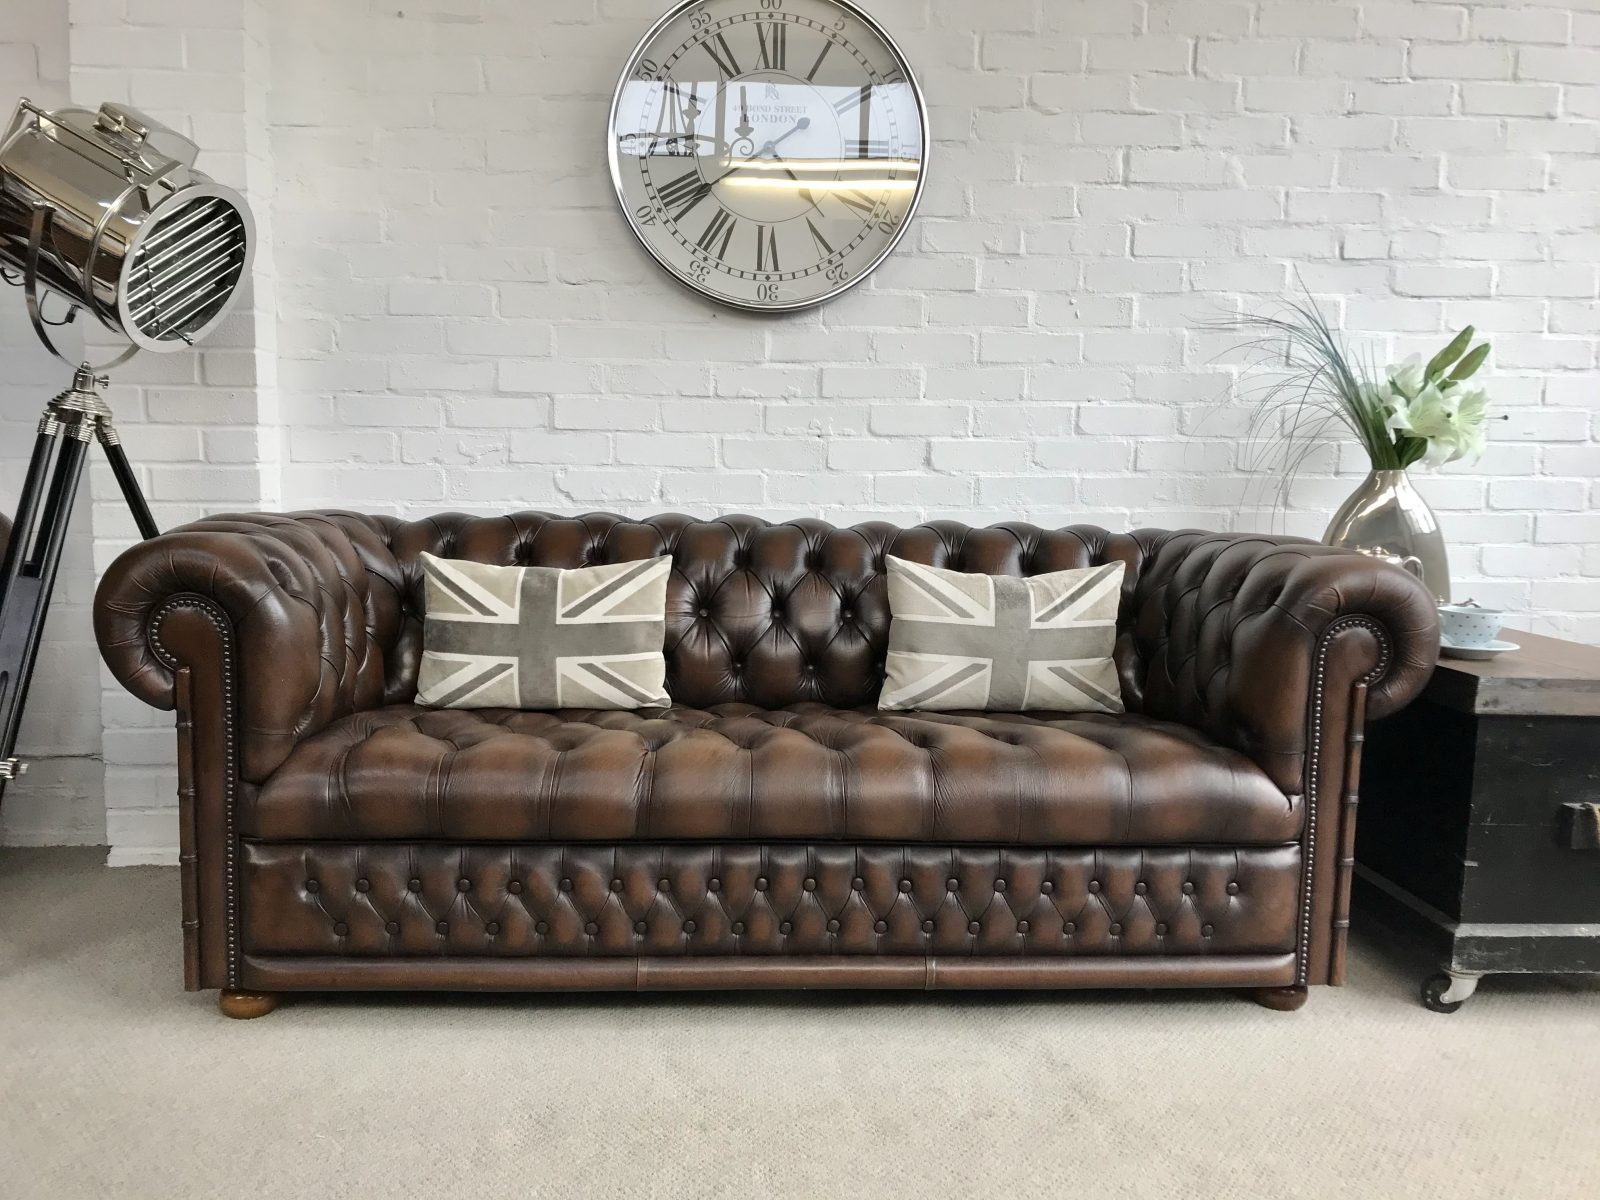 Stunning Fleming And Howland 3 Seater Chesterfield Sofa…..SOLD.